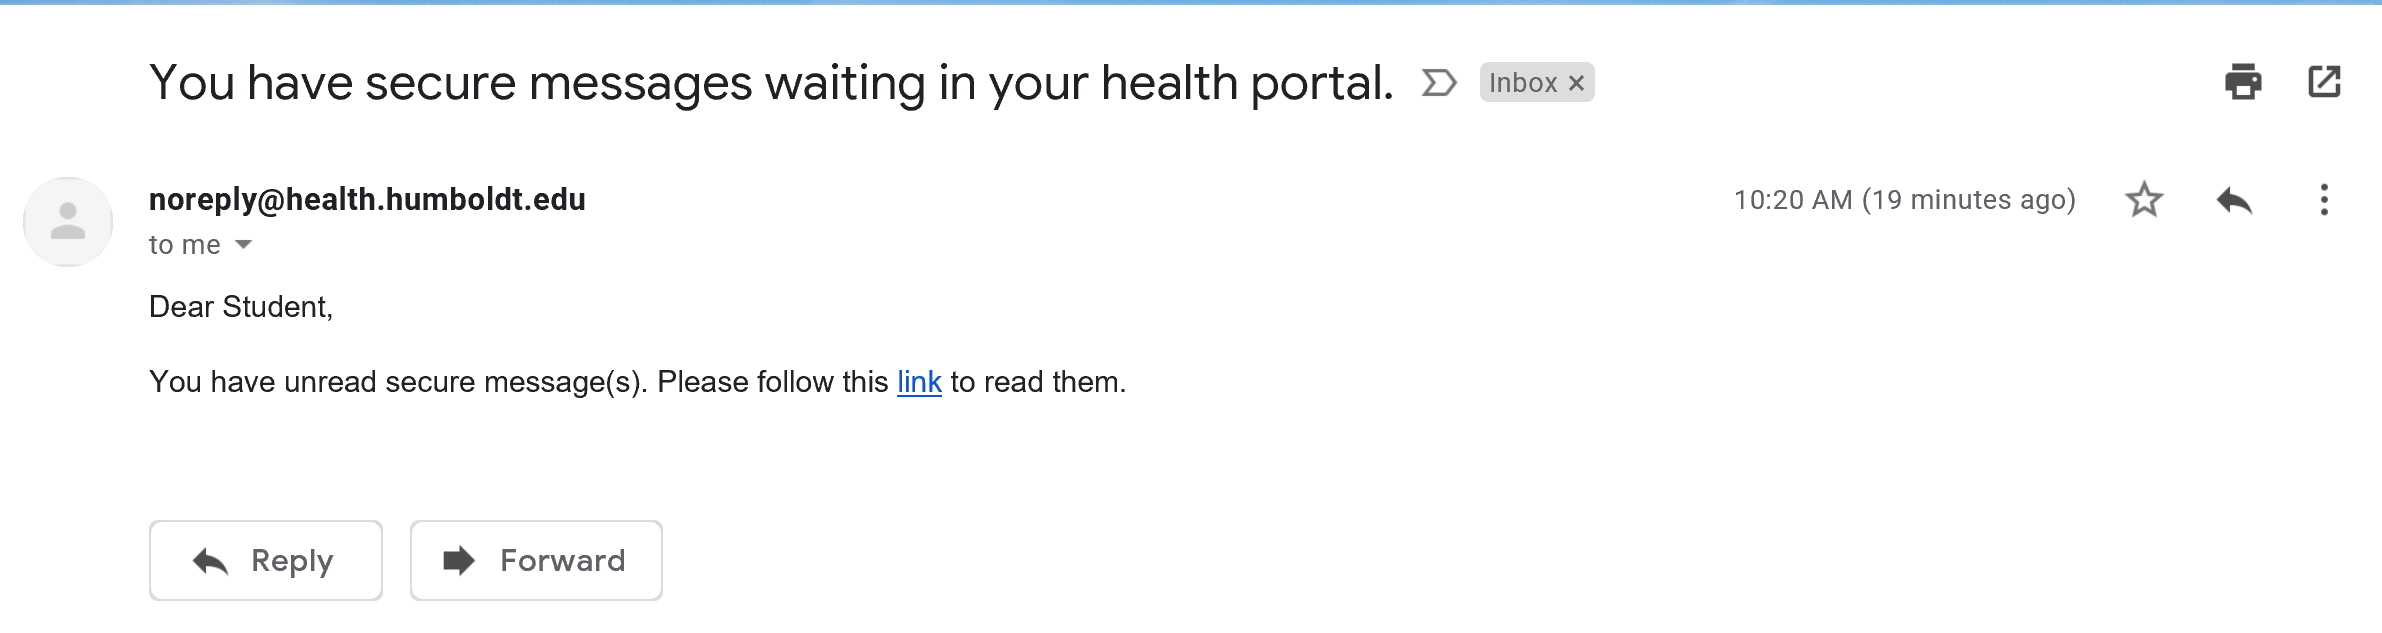 portal message email example